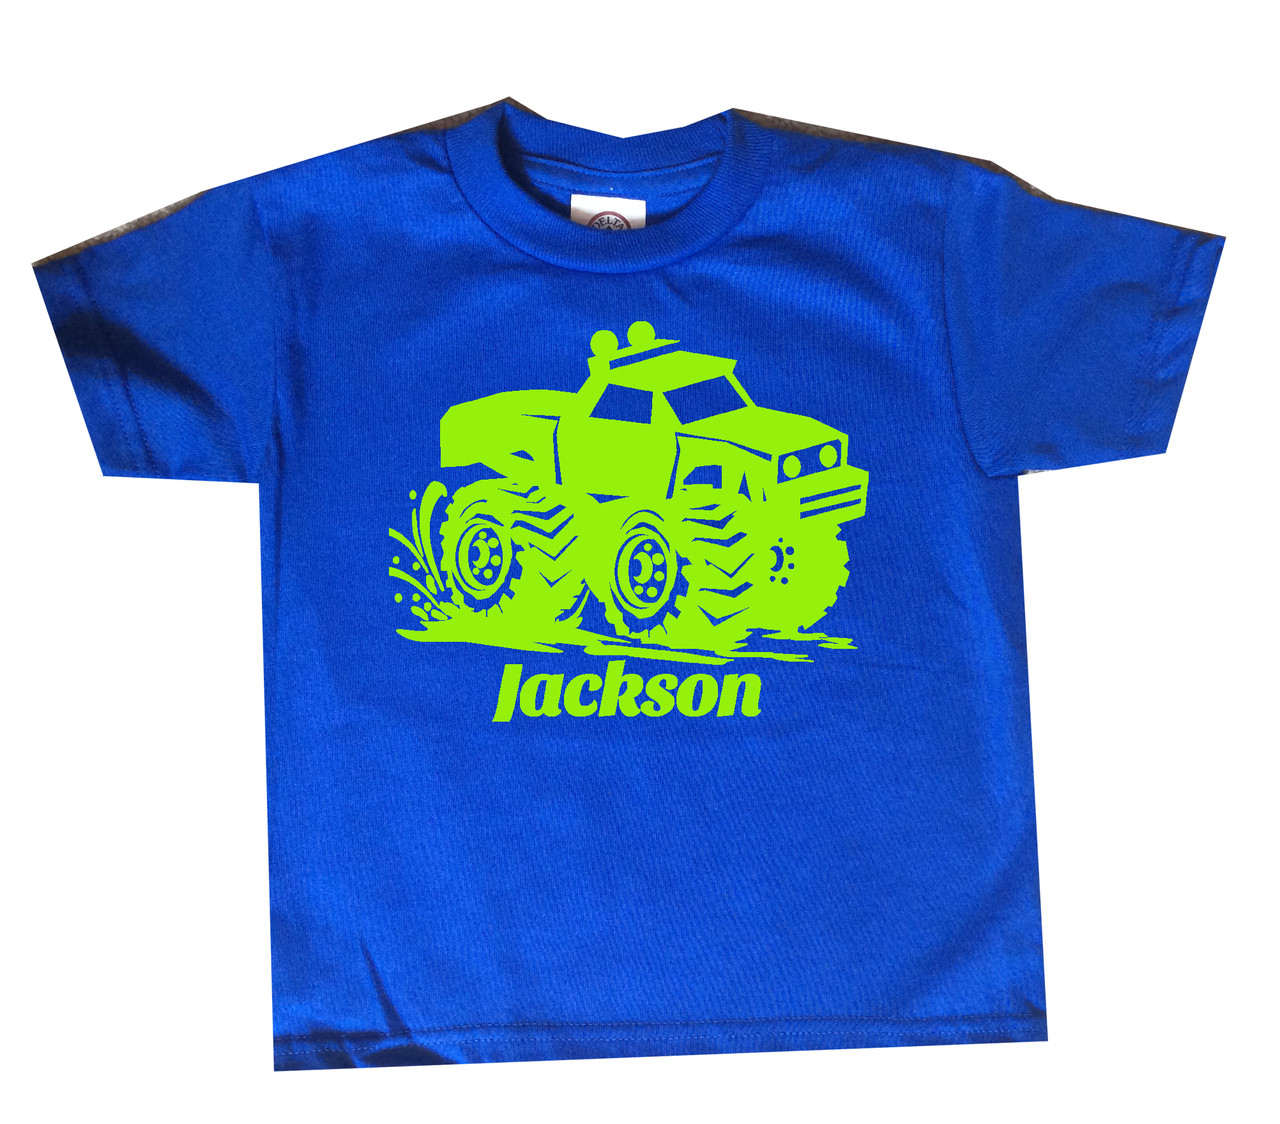 Monster truck tshirt lime print on royal blue shirt